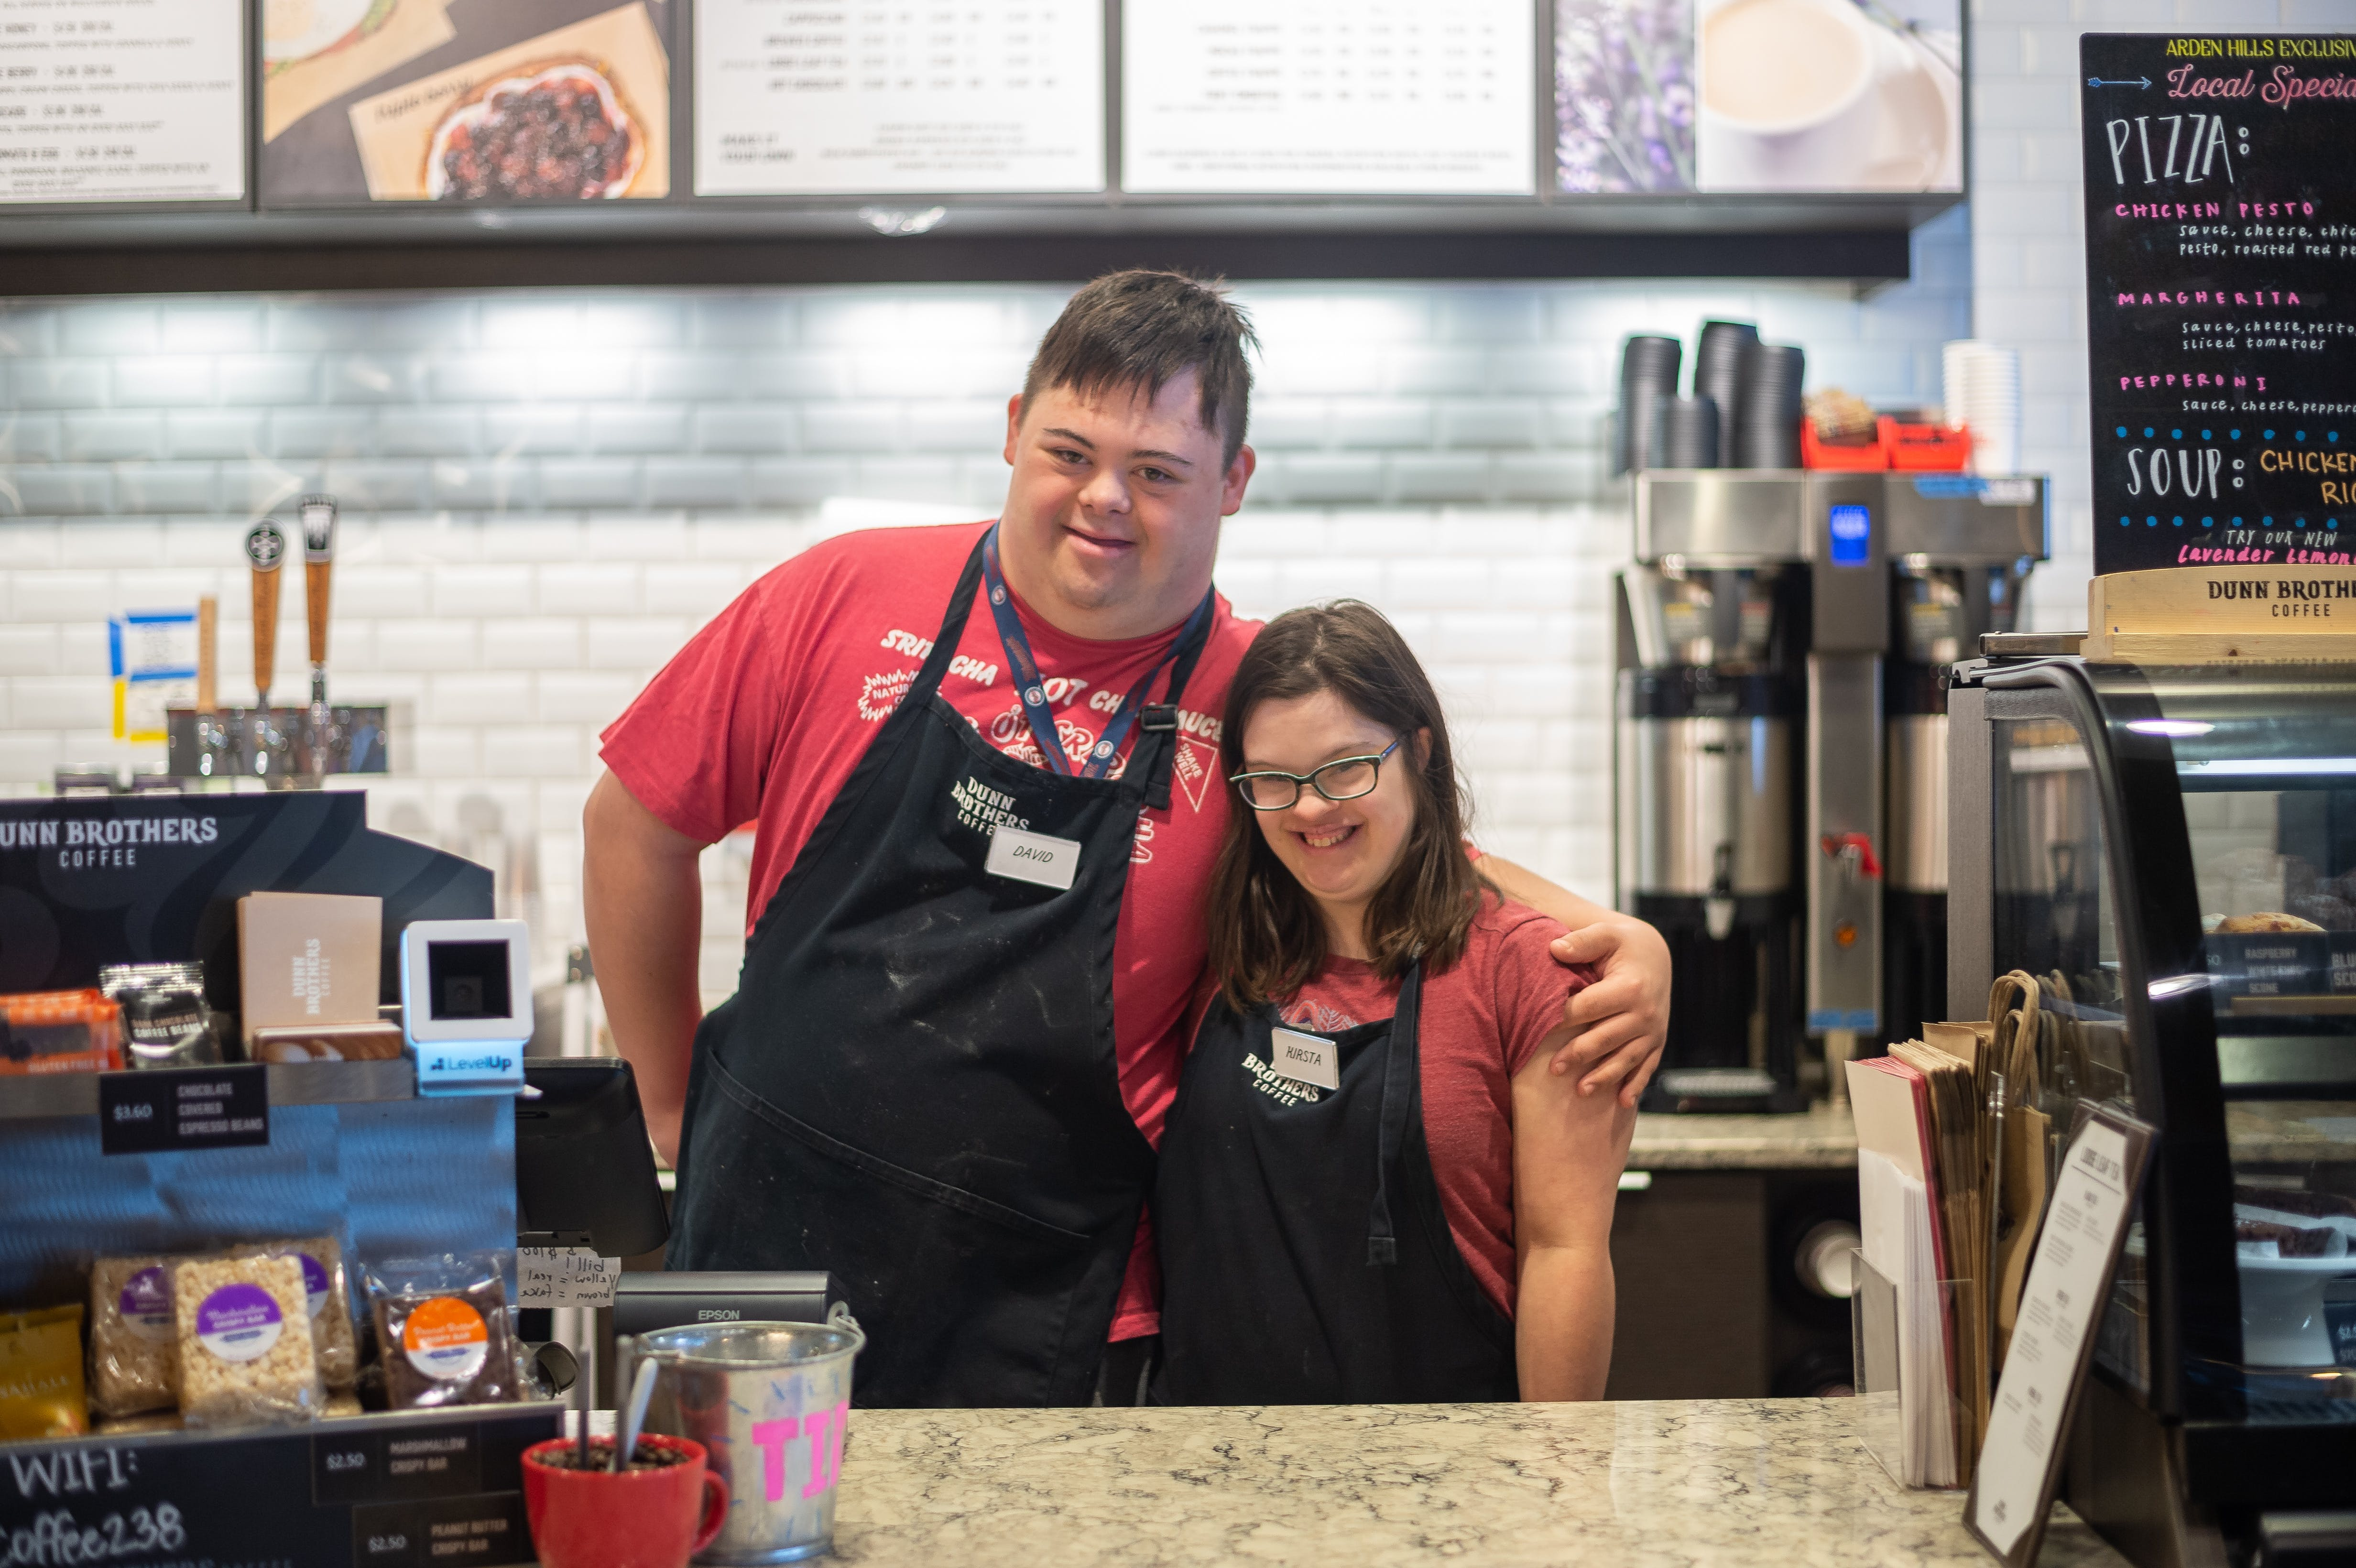 Familiar faces at Dunn Brothers Coffee in Arden Hills